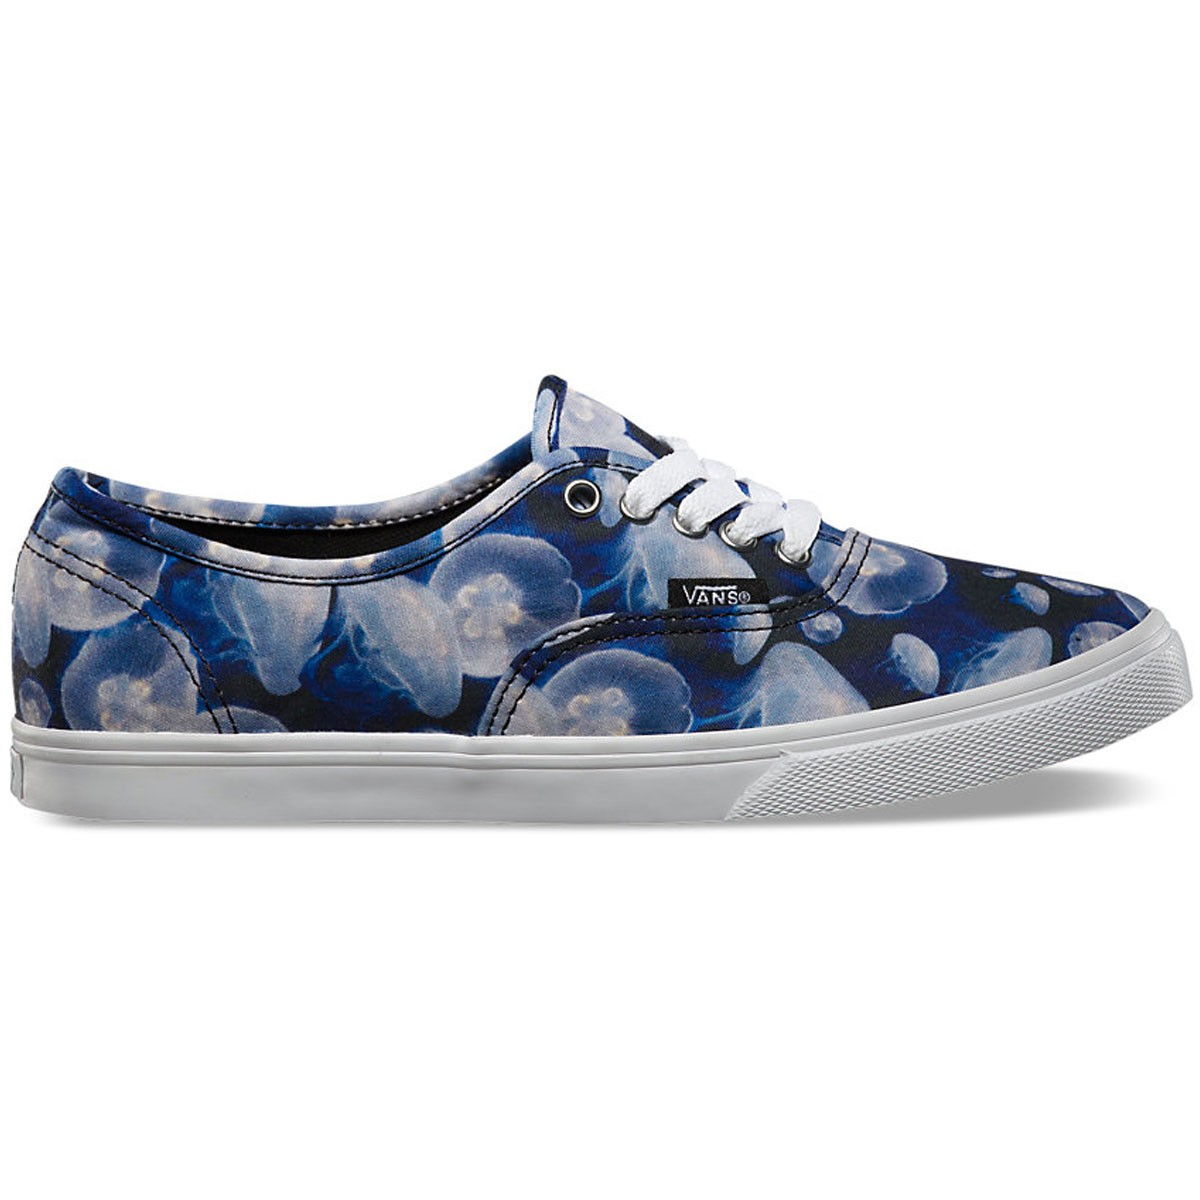 07be5ef8066 Vans Authentic Lo Pro Womens Shoes